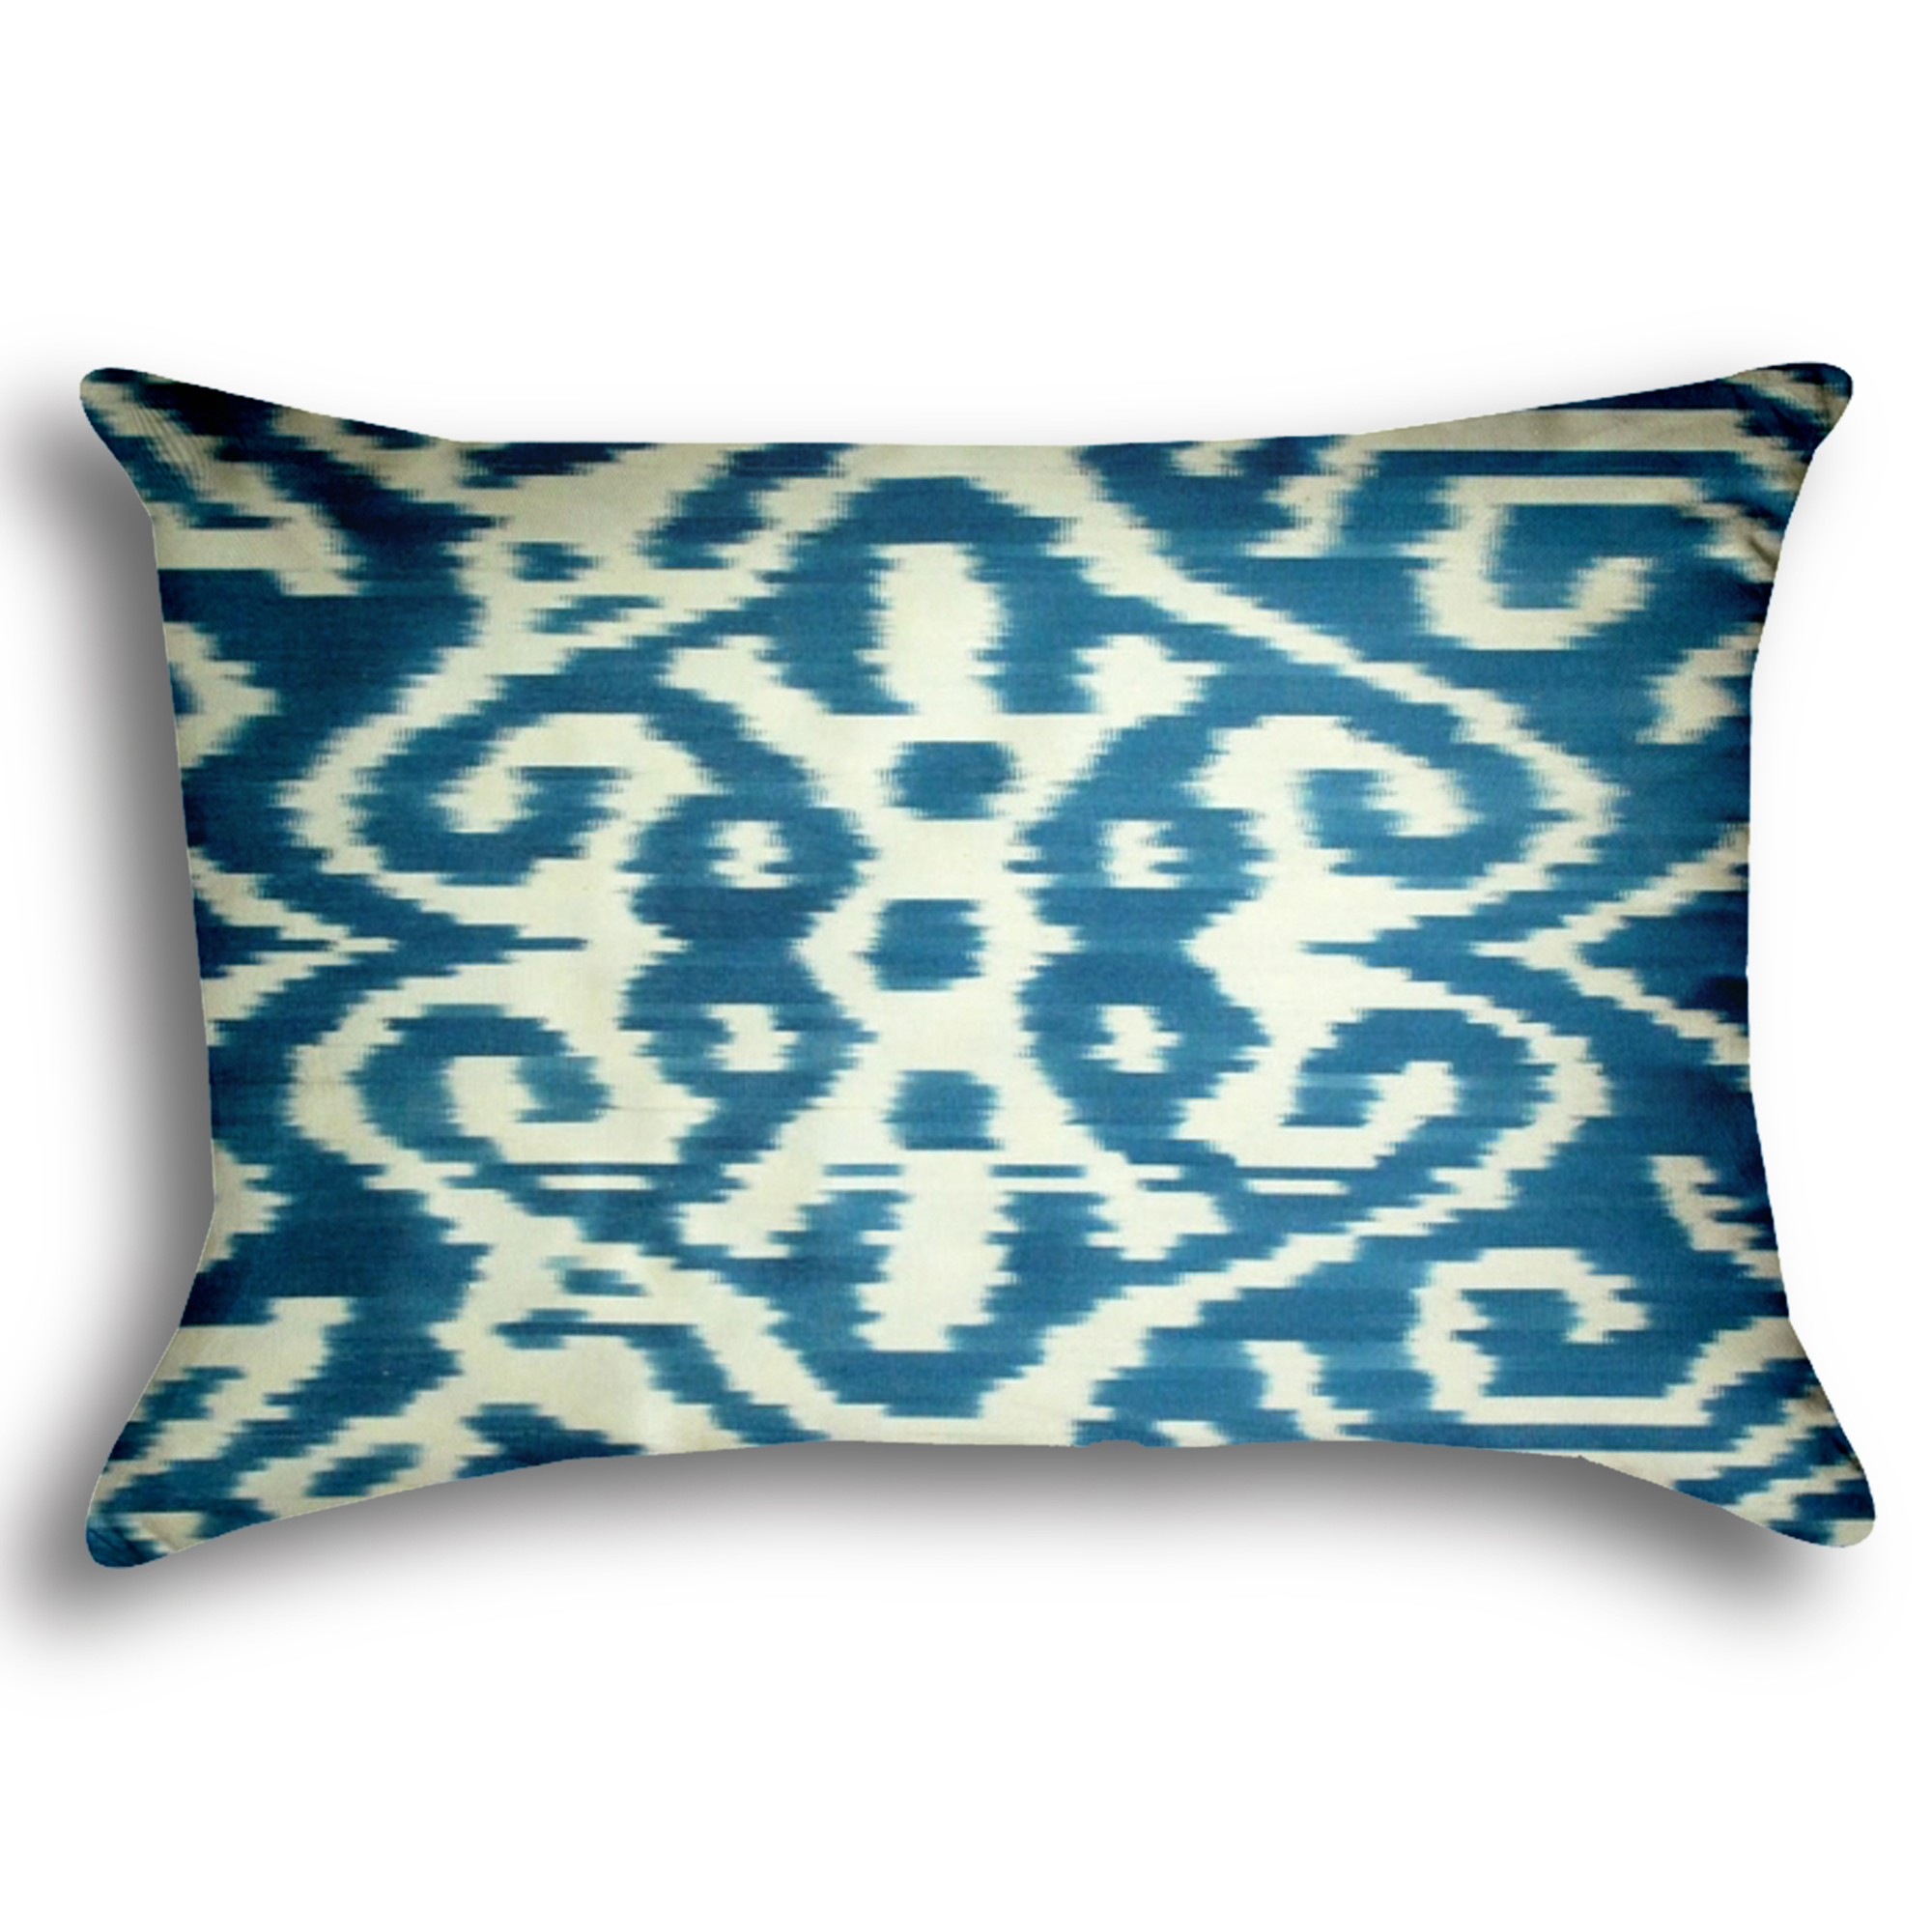 big-chefs-cafe-and-brasserie-silk-ikat-pillow-0005-square